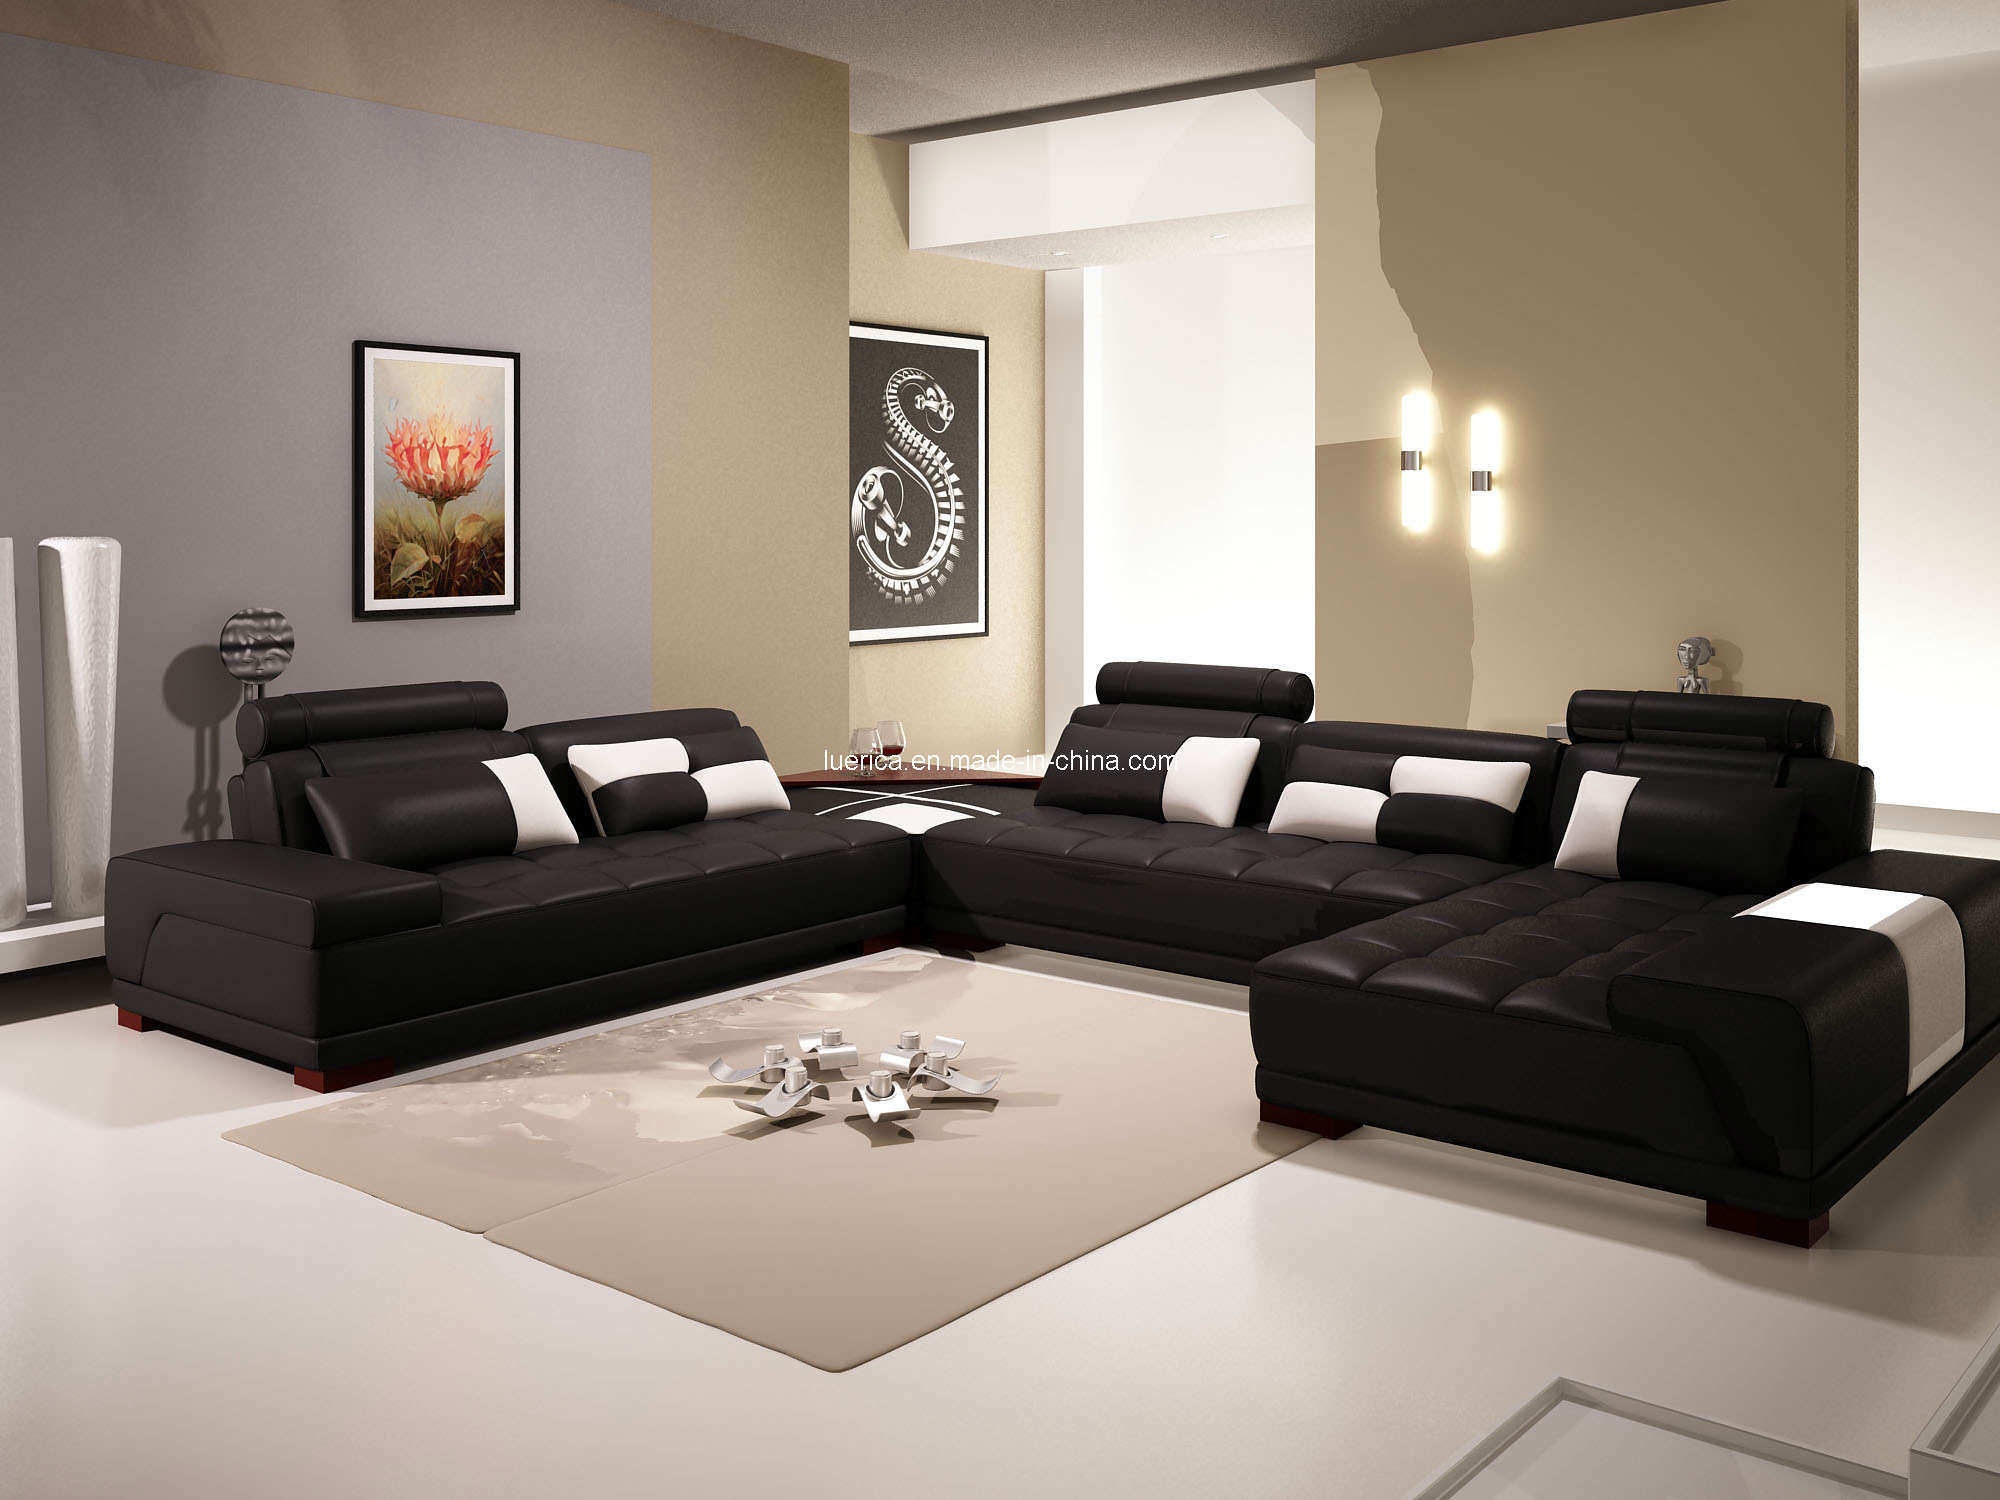 Western Couch - Compare Prices on Western Couch in the Sofas